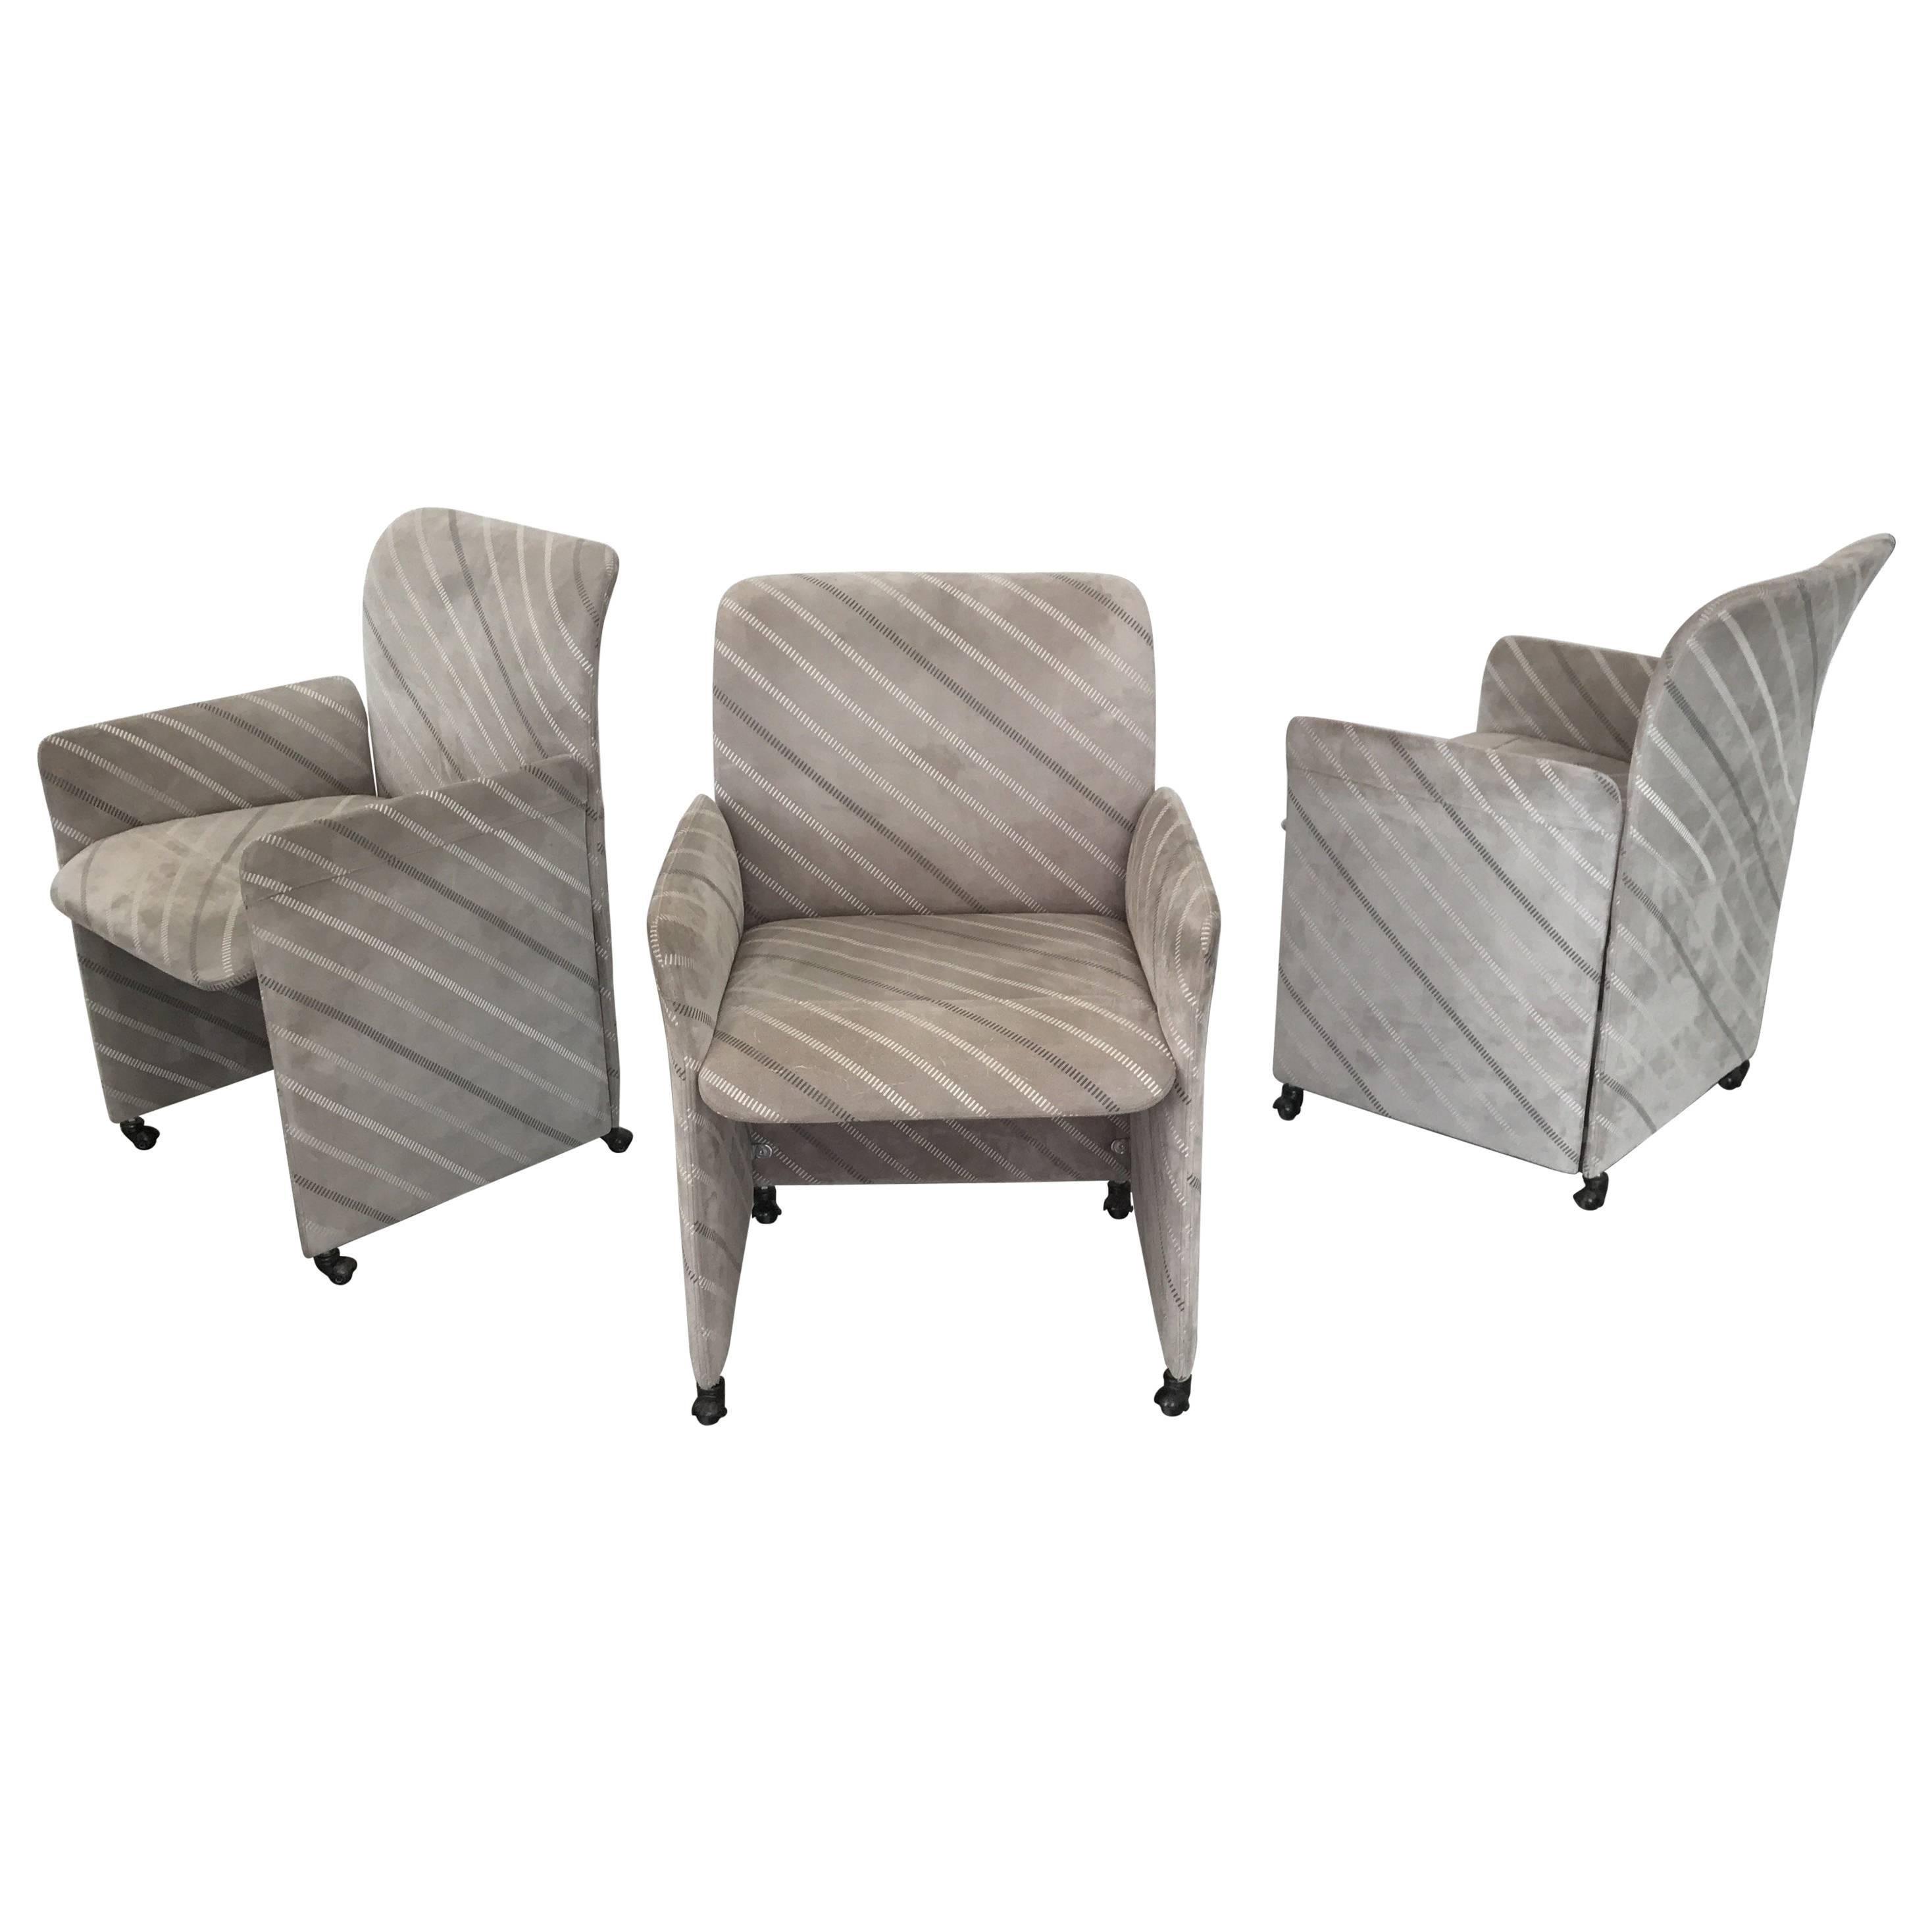 Three Suede Dining Chairs by Saporiti